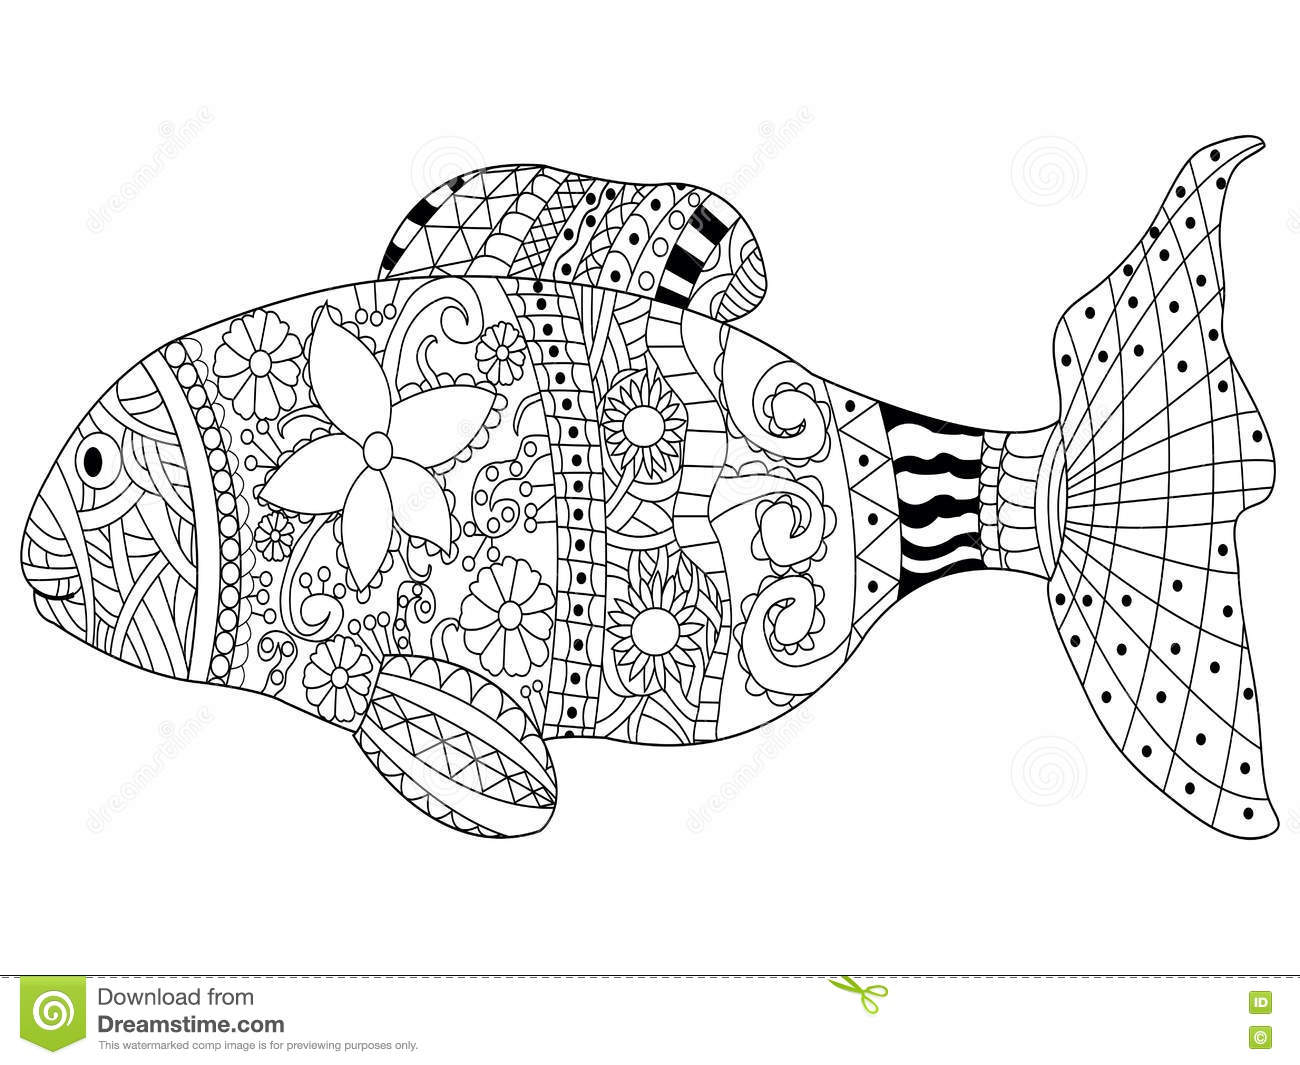 fish coloring book vector adults sea animal illustration anti stress adult zentangle style black white lines